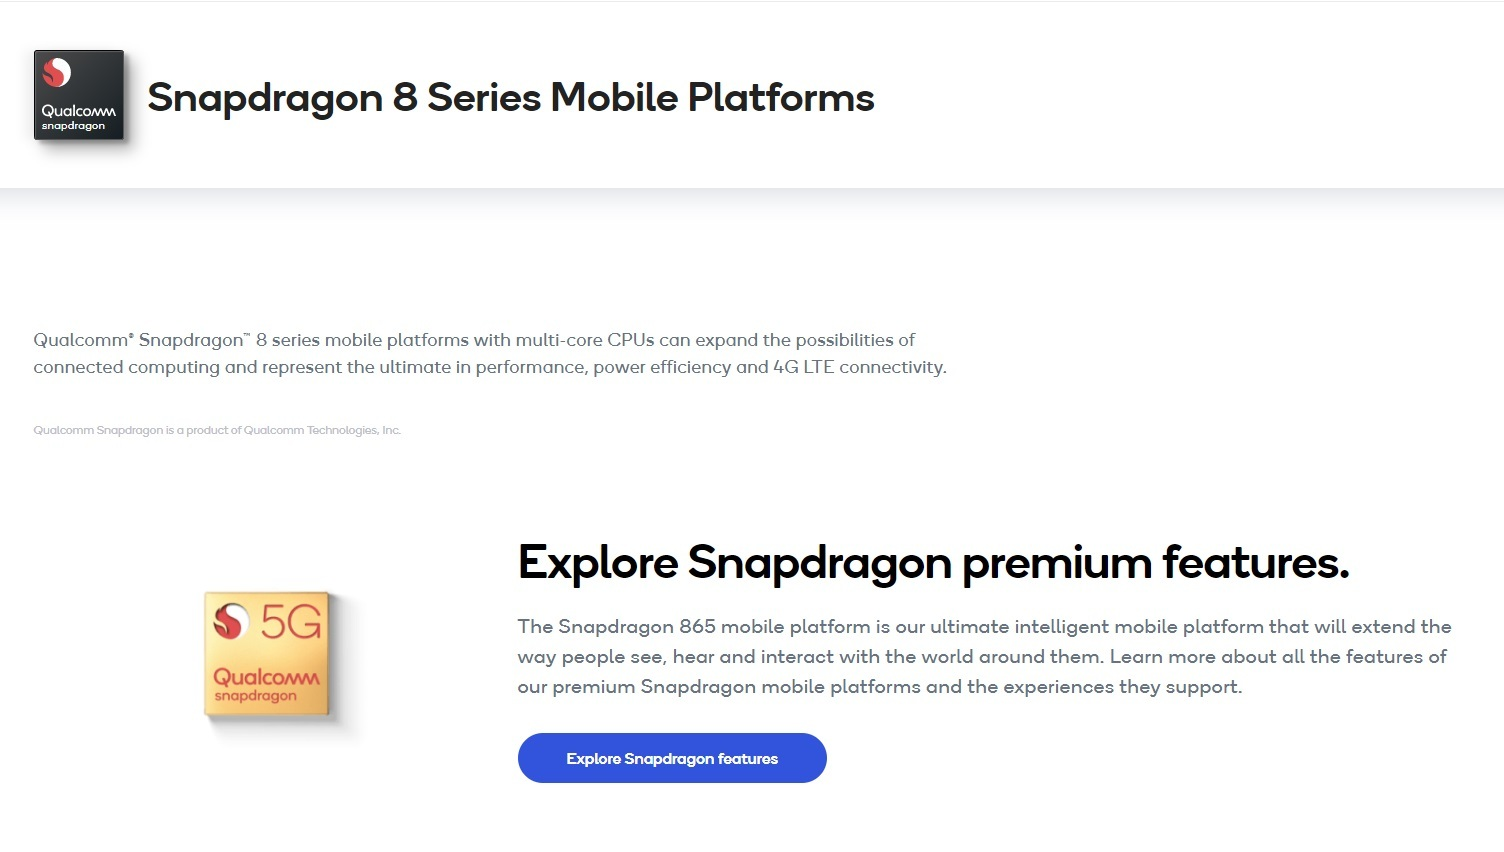 snapdragon 8 series